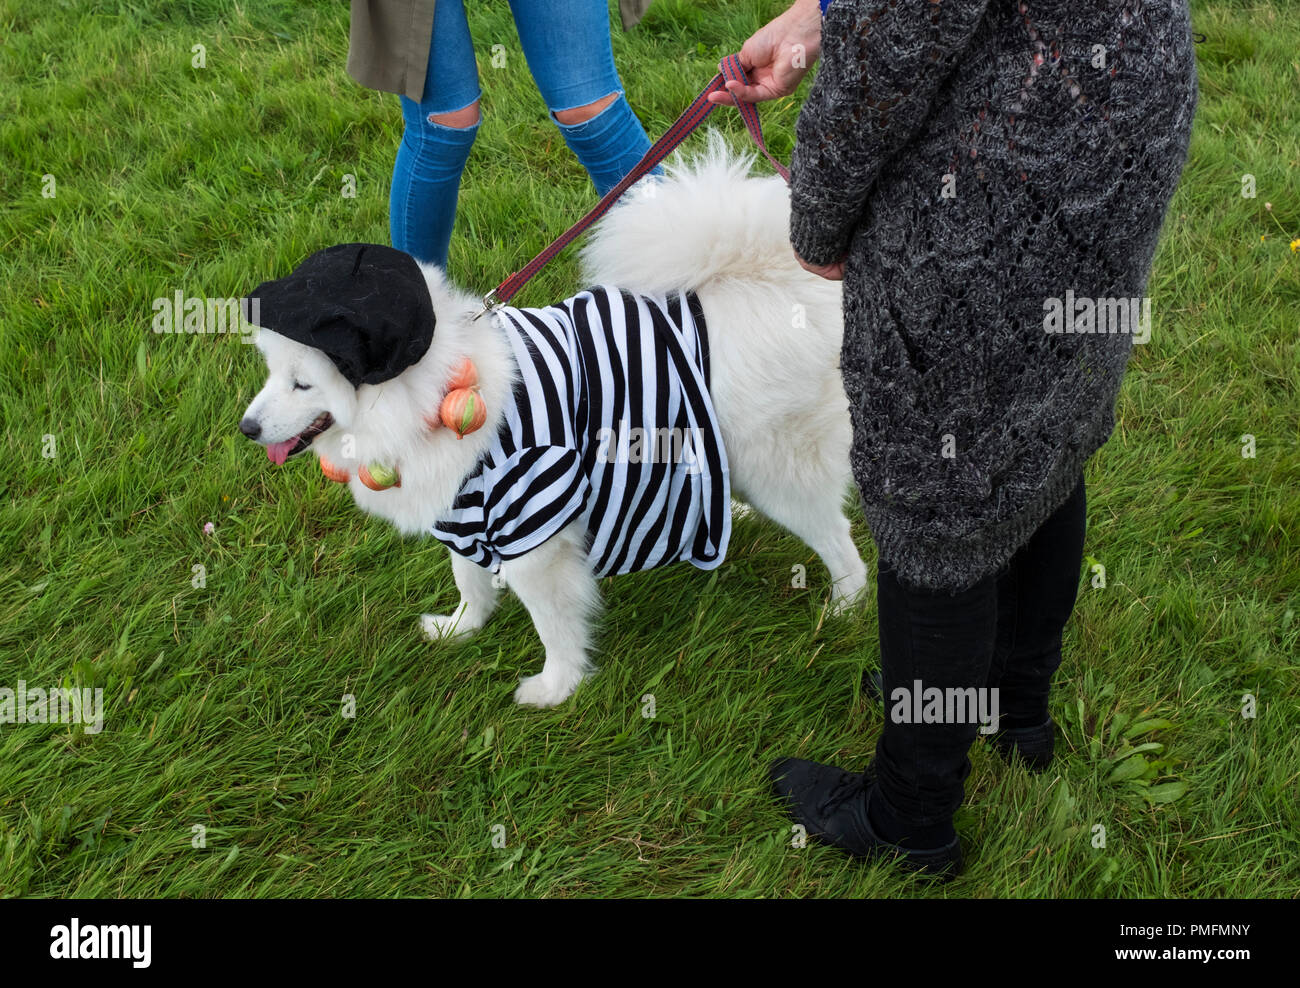 Samoyed dog dressed as a French onion seller during a dog show at the Chepstow Festival. - Stock Image